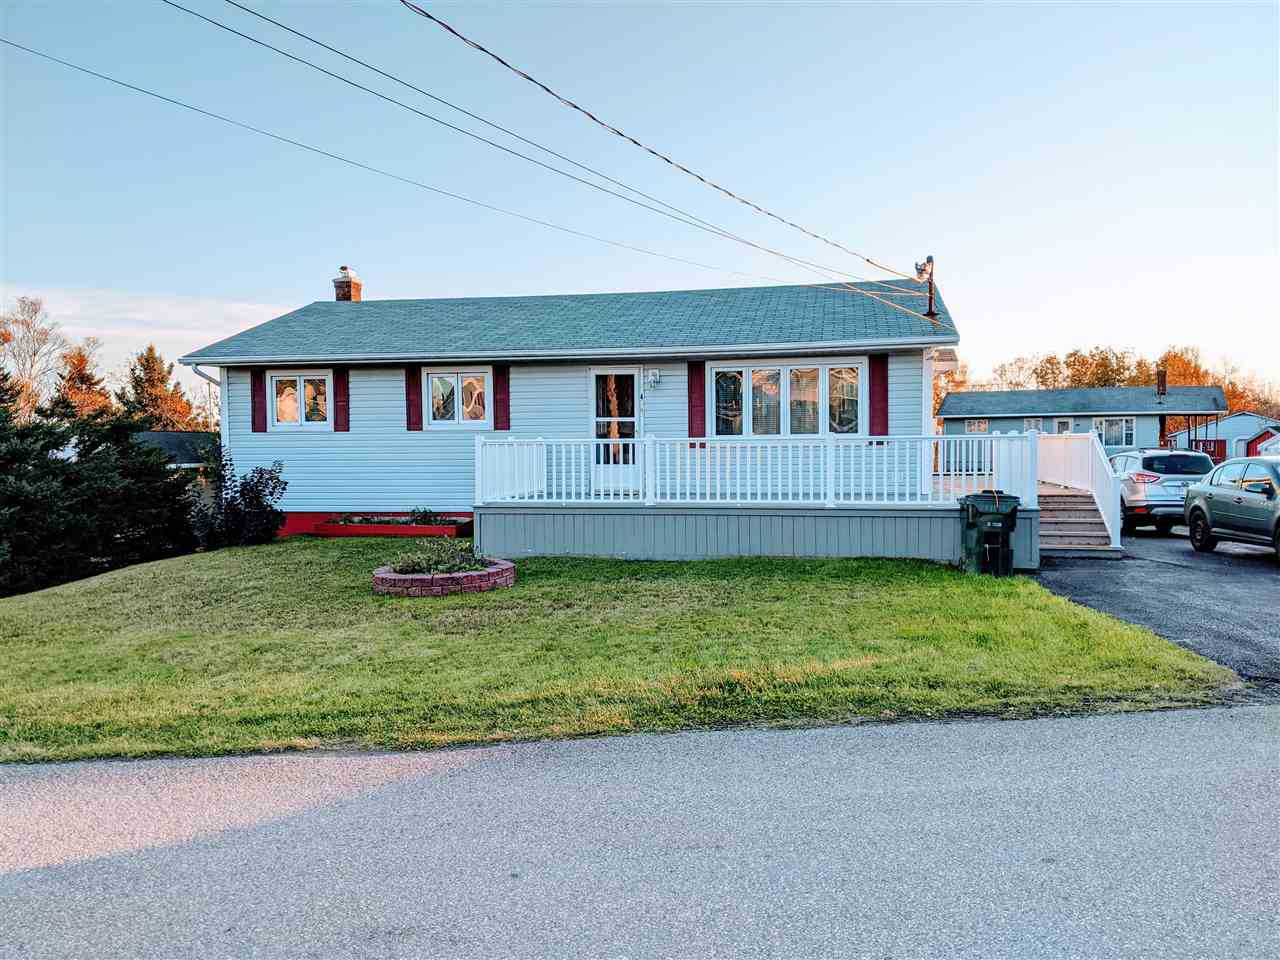 Main Photo: 43 International Street in Glace Bay: 203-Glace Bay Residential for sale (Cape Breton)  : MLS®# 202022170